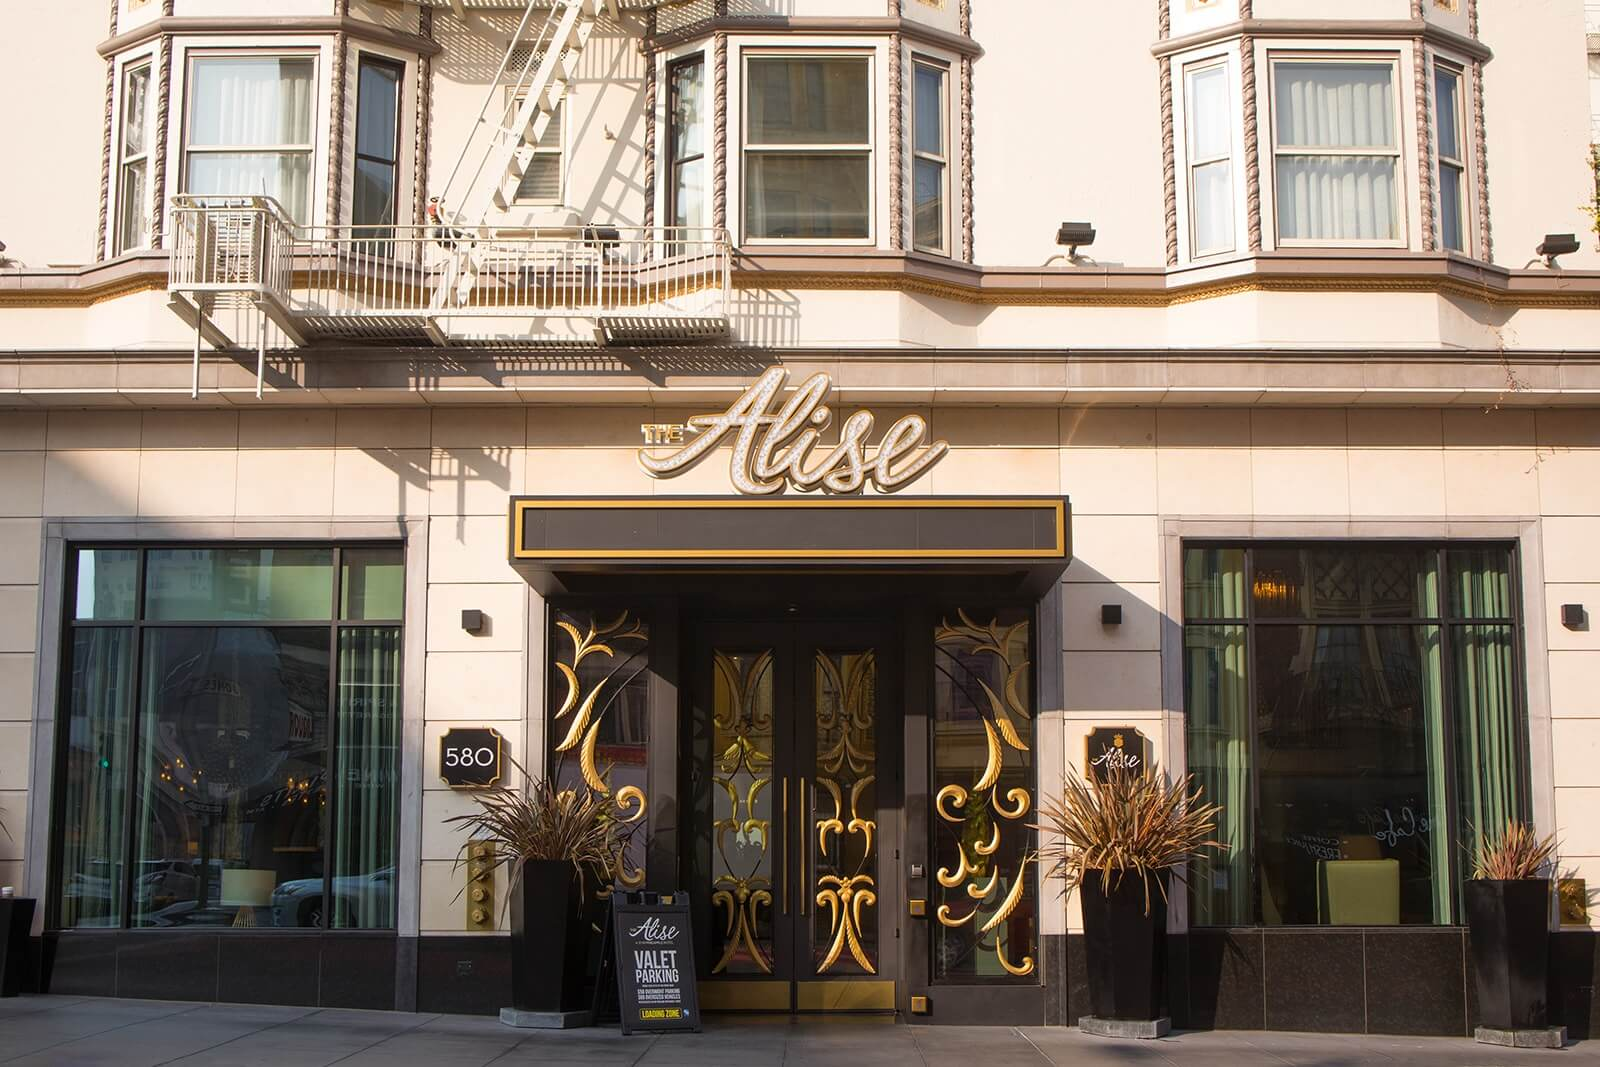 san francisco hotel review, hotels in san francisco, hotels near union square, san francisco hotel near union square, union square hotels, sf hotels near union square, sf hotel reviews, best hotels in san francisco, staypineapple, staypineapple san francisco, staypineapple union square, the alise, the alise hotel in san francisco, hotels to stay in san francisco, places to stay in san francisco, bars in san francisco, best lounges in san francisco, best lounges in sf